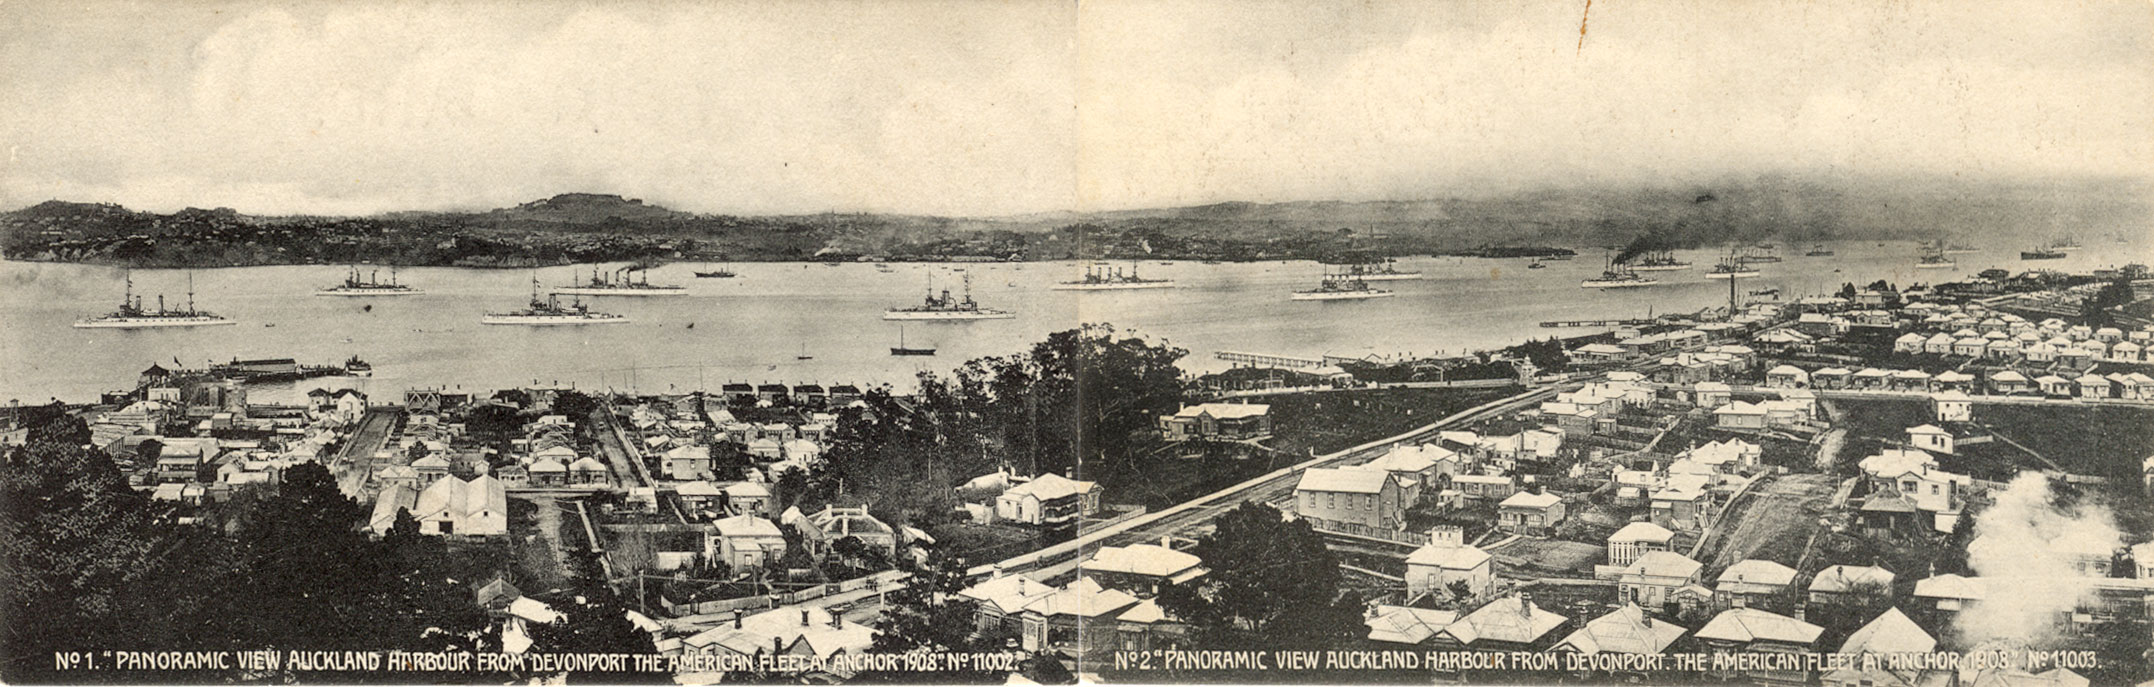 Photo taken from across the harbor from Auckland from a hilltop in Devonport